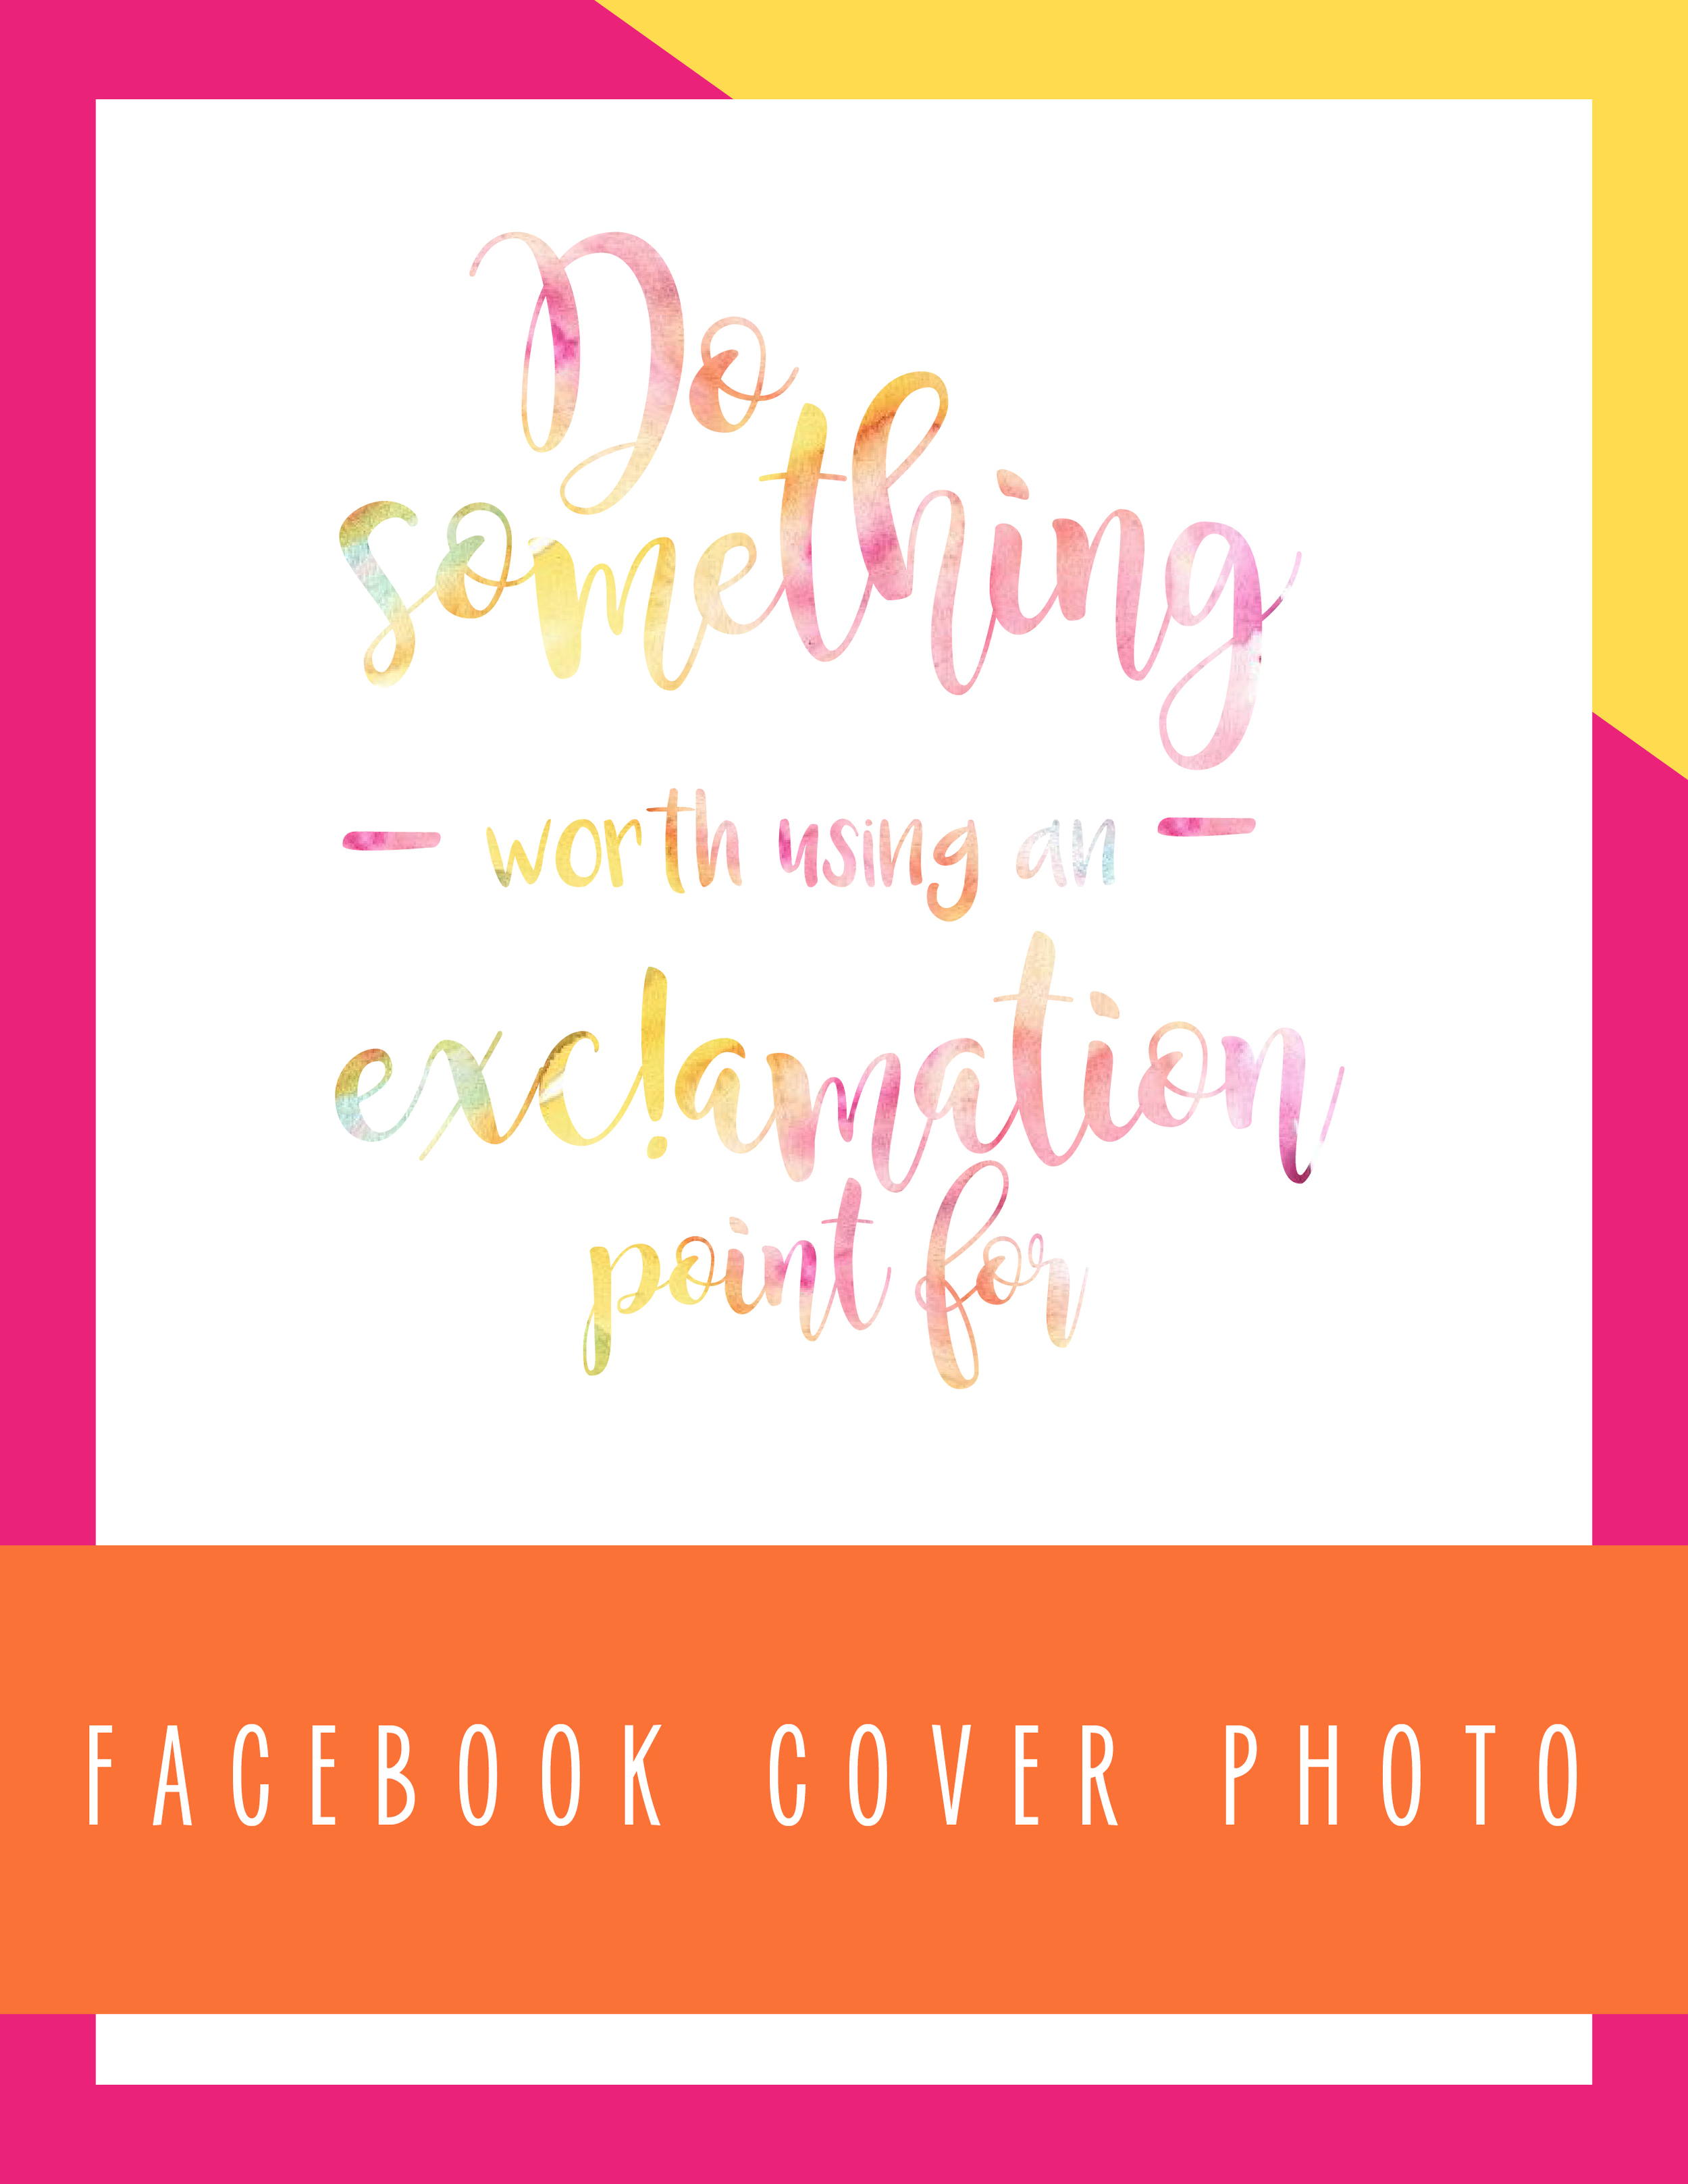 Bold & Pop: So Something Worth Using an Exclamation Point for 8x10 Facebook Cover Photo